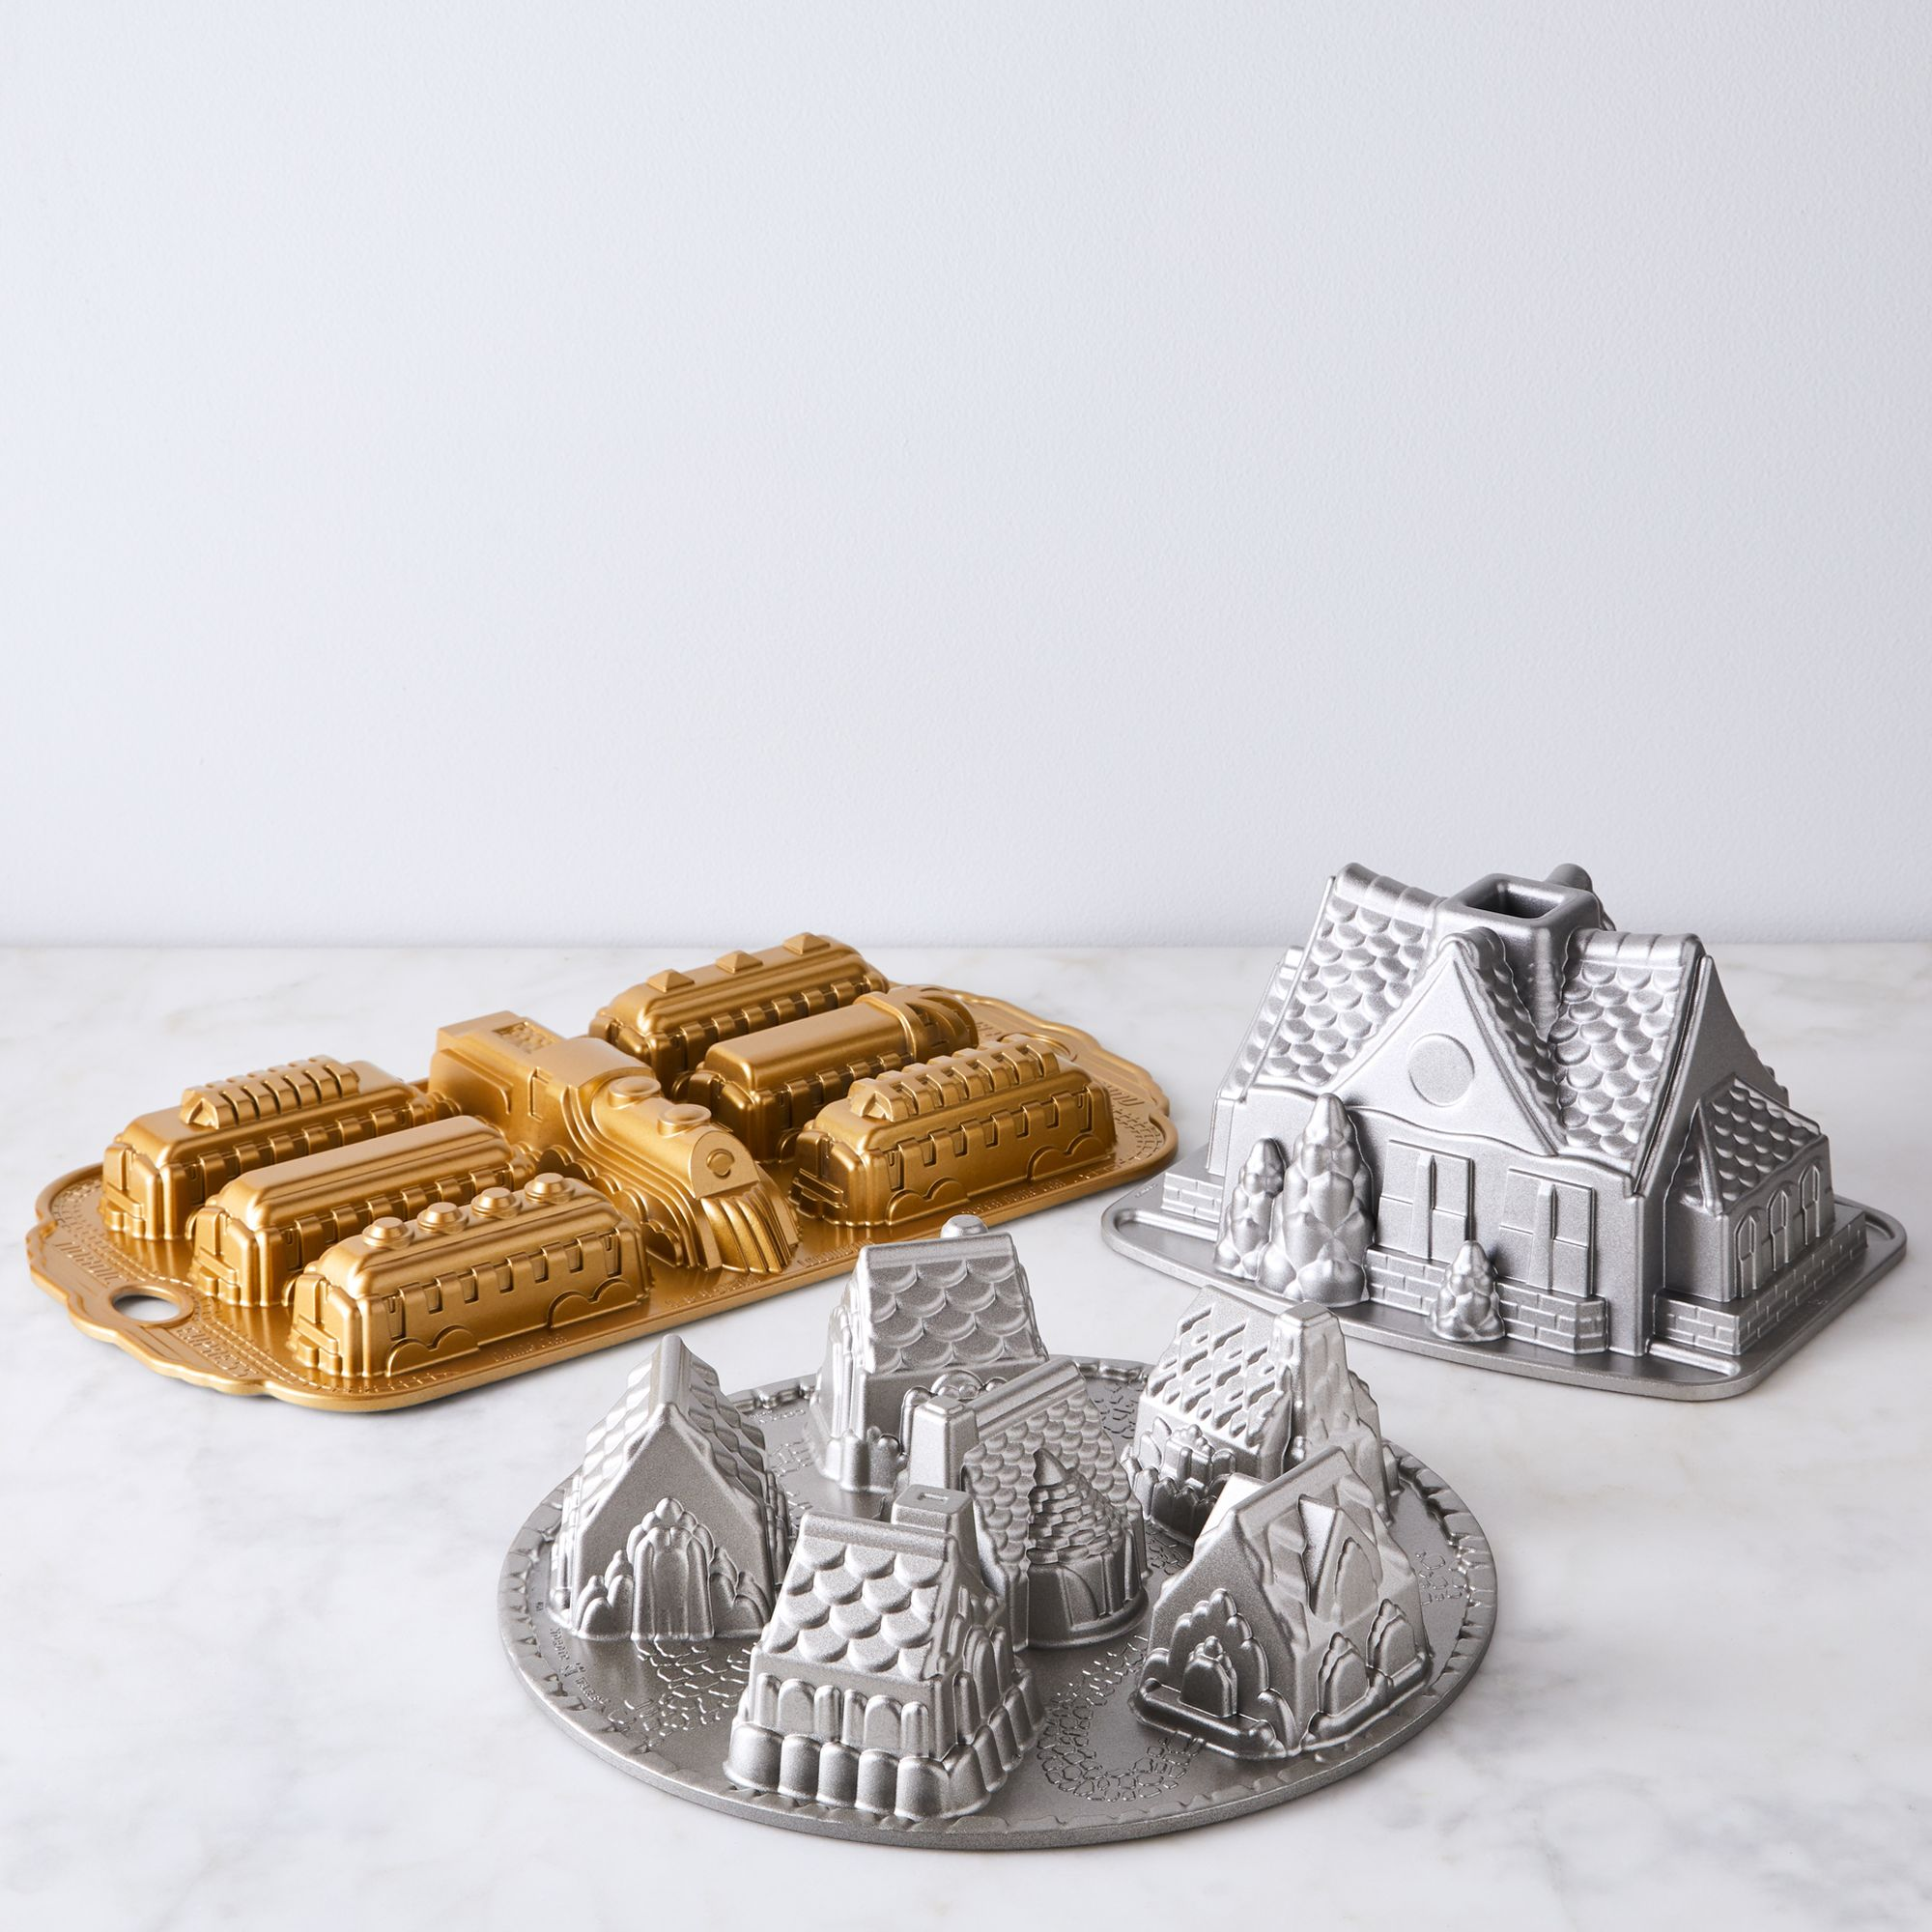 Nordic Ware Cozy Village and Train Baking Pans